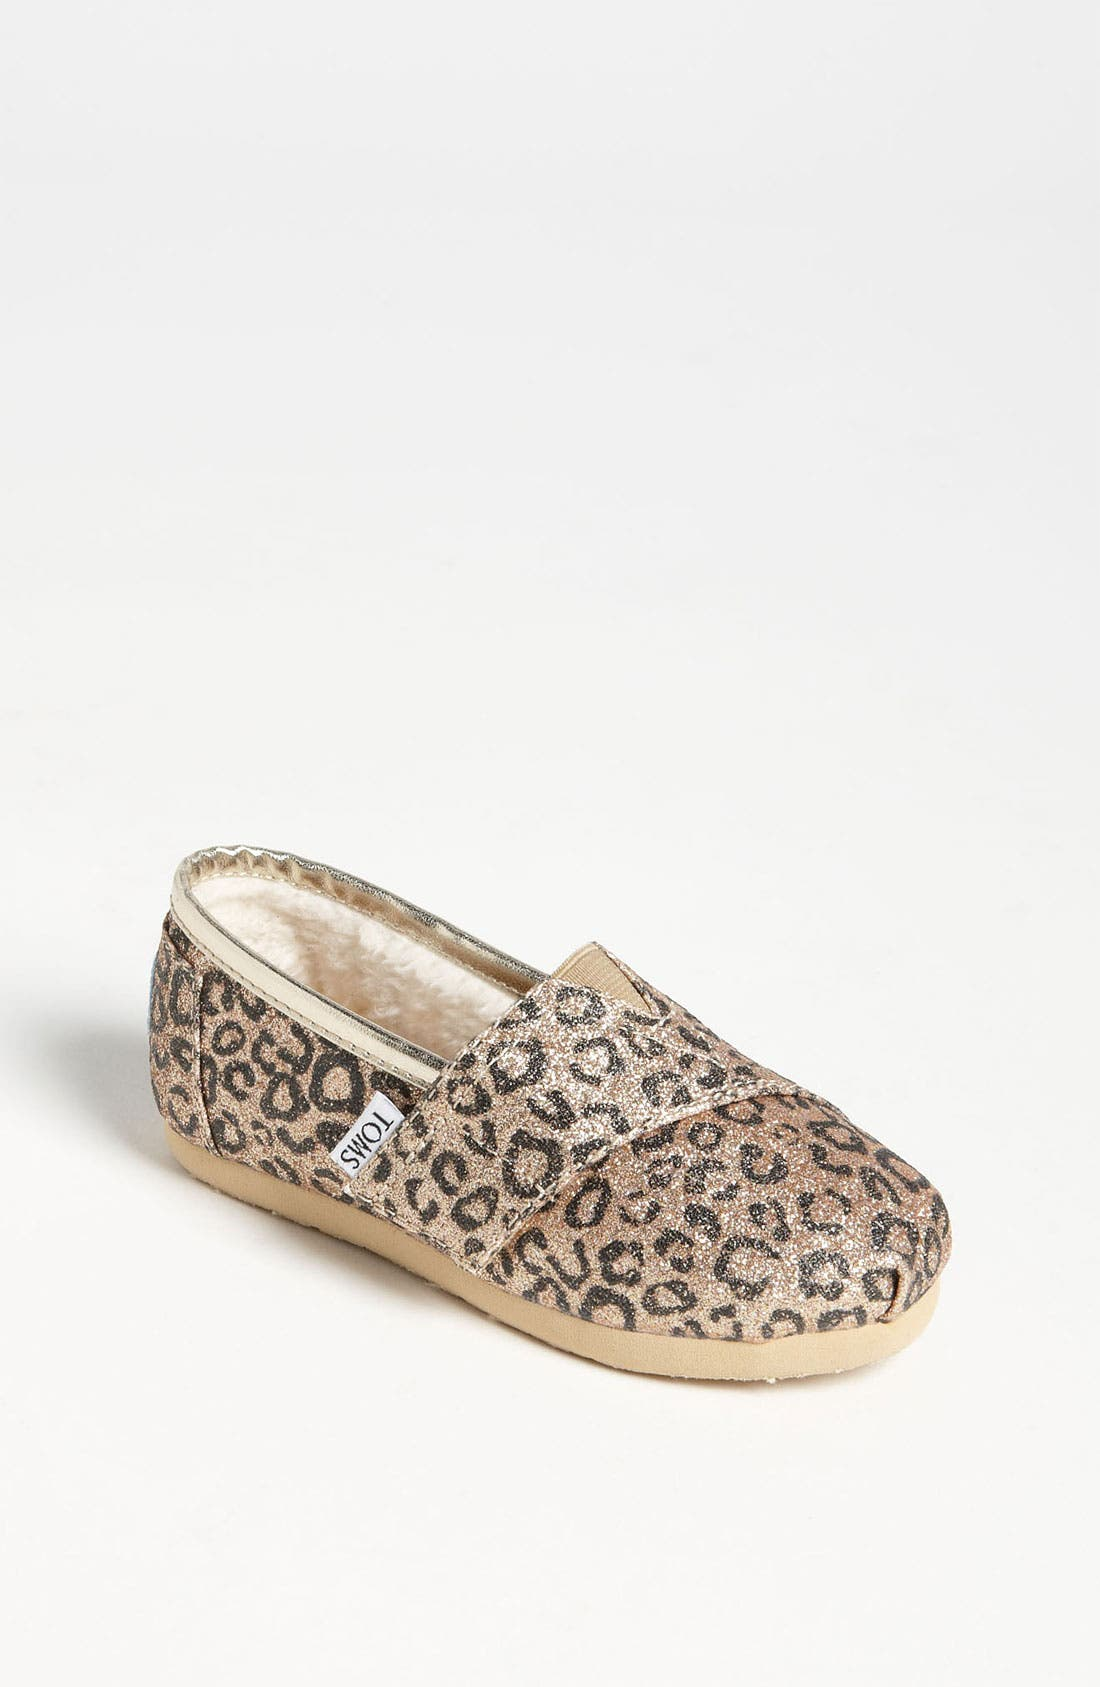 Alternate Image 1 Selected - TOMS 'Classic Tiny - Glitter' Print Slip-On (Baby, Walker & Toddler) (Nordstrom Exclusive)